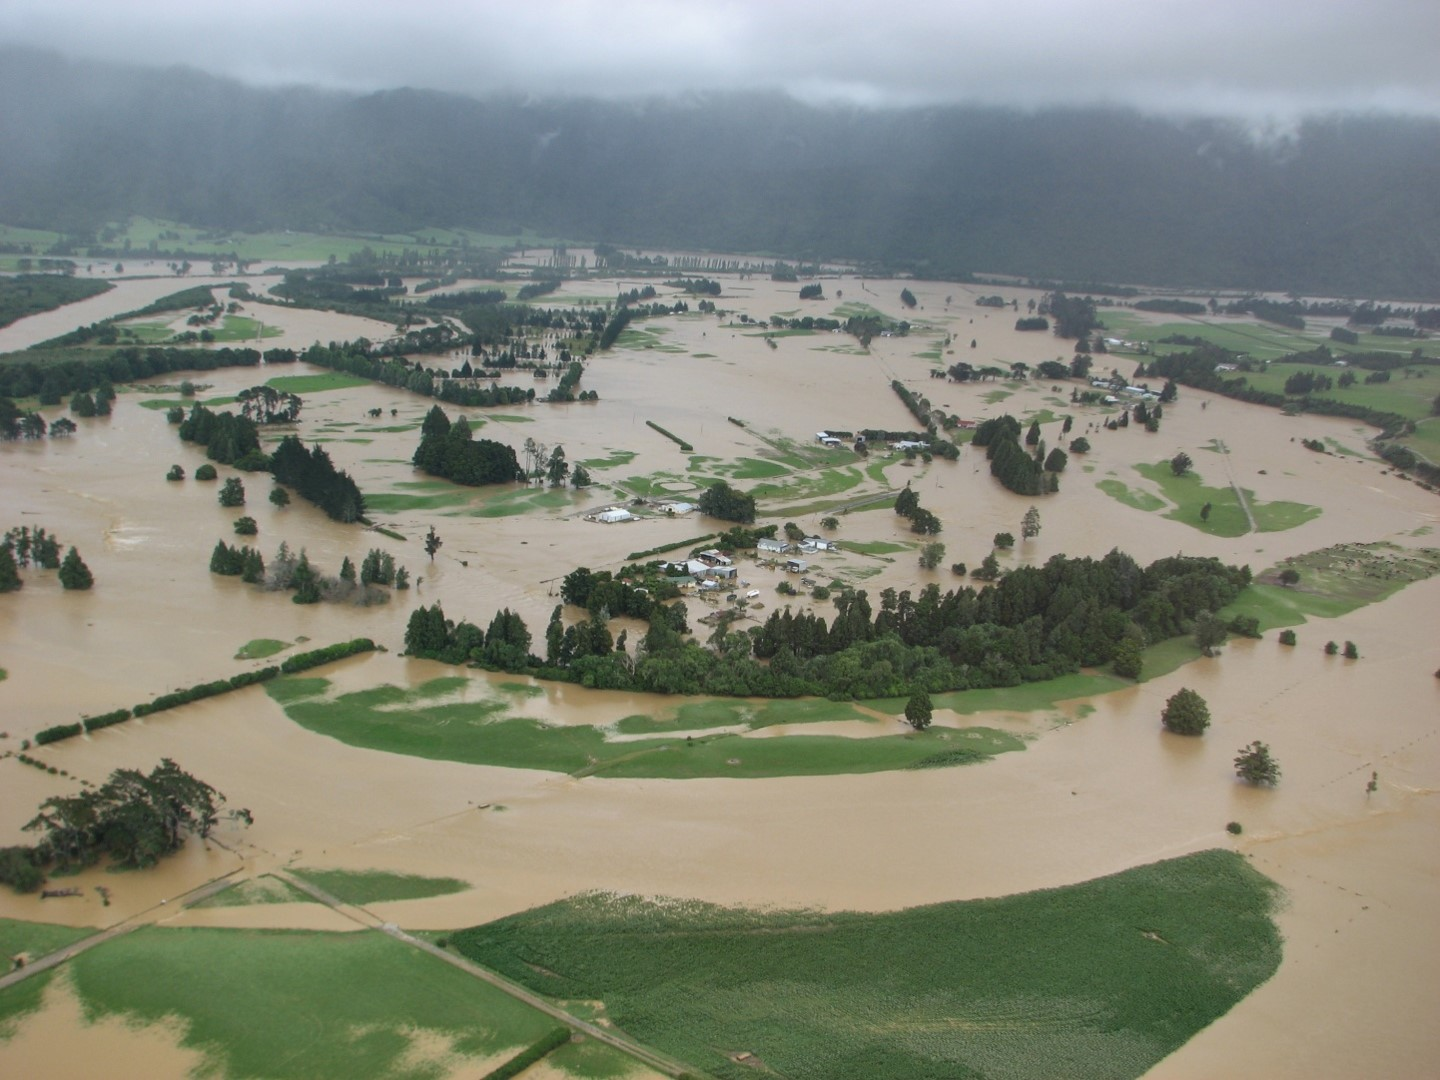 View of the Aorere River in flood covering fields, roads and lapping at houses, in December 2010